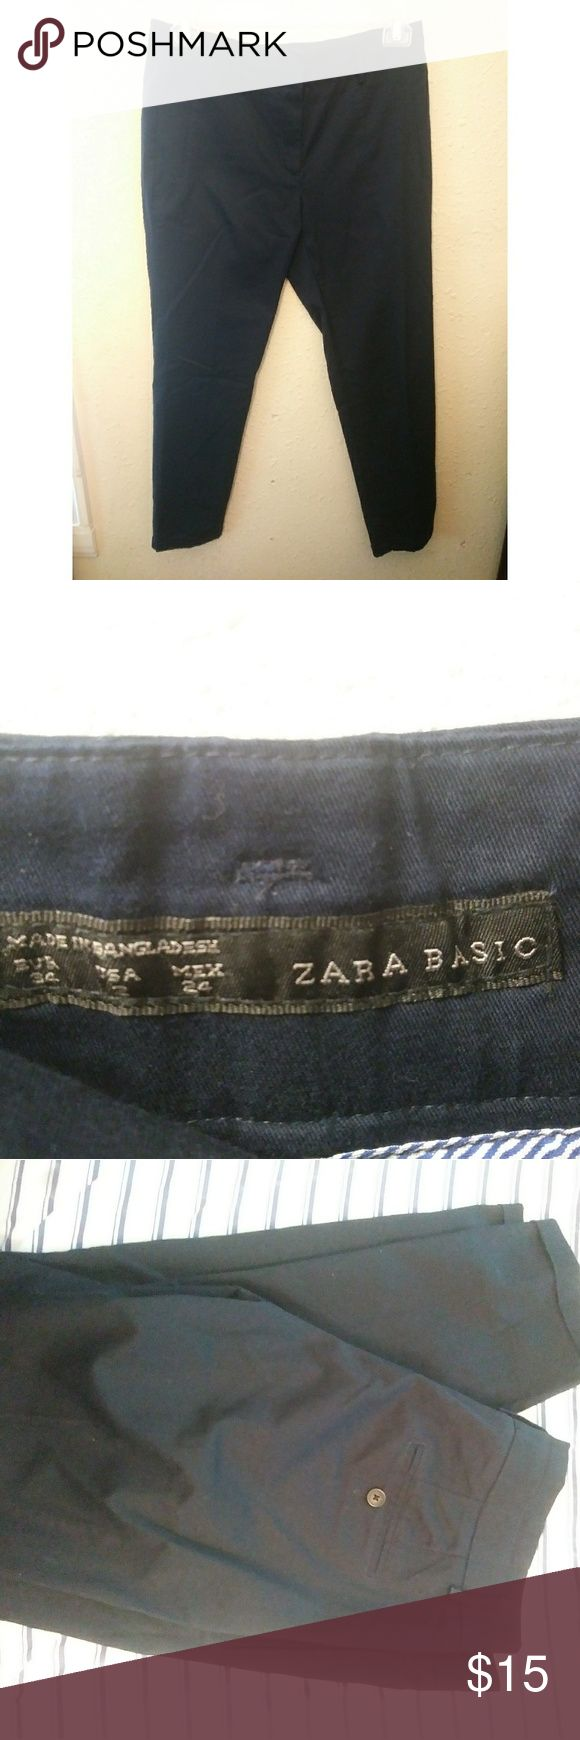 Zara Basic Navy Career Pants In great shape, perfect for the office! Zara Pants